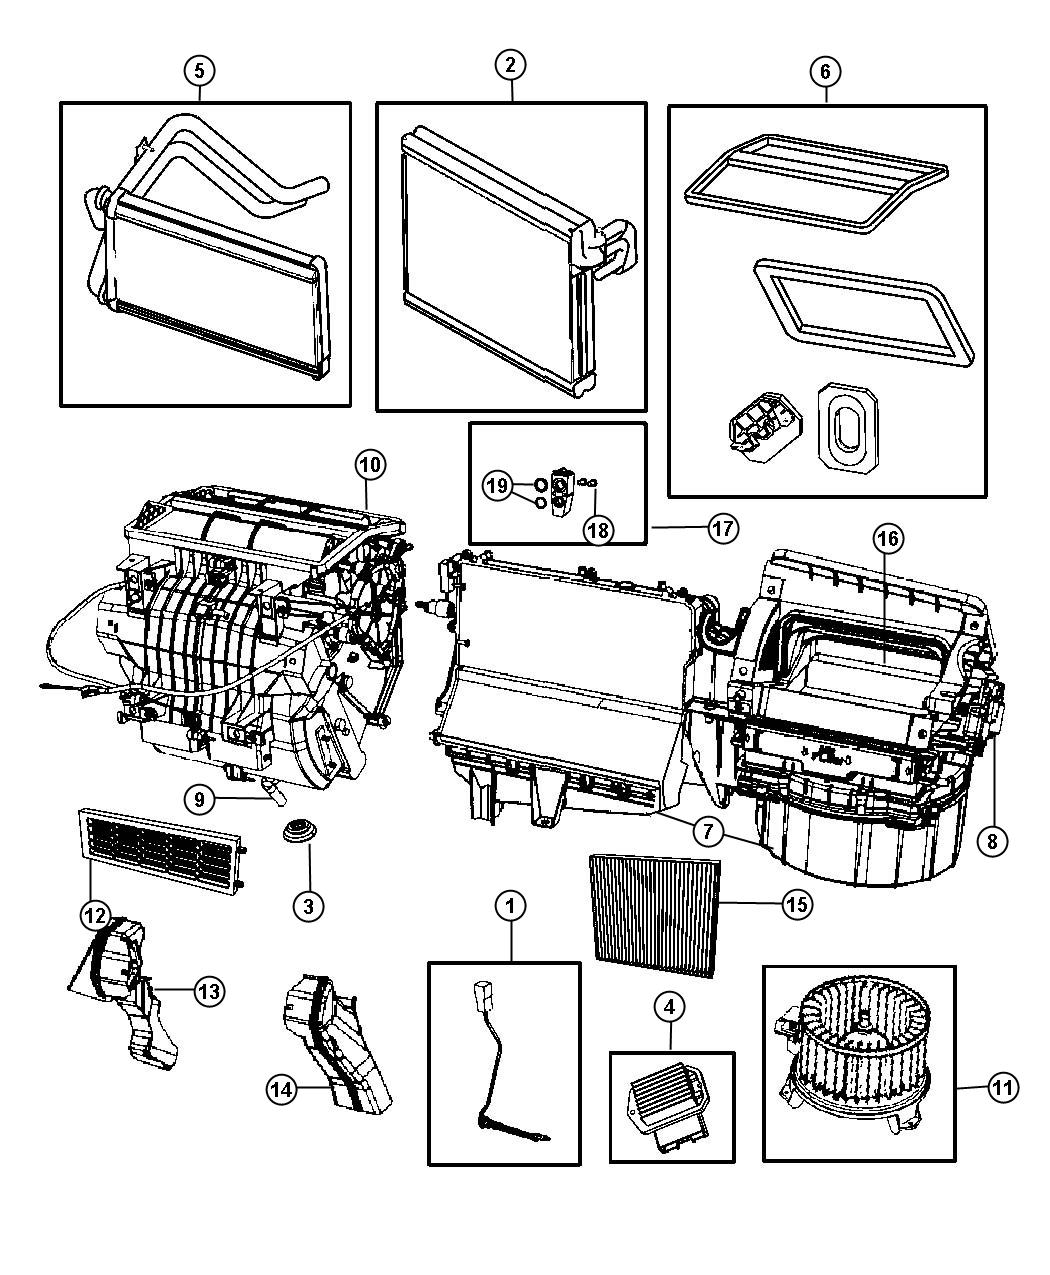 Jeep Fuel Filter Location - Wiring Diagrams List Jeep Cherokee Fuel Filter Location on